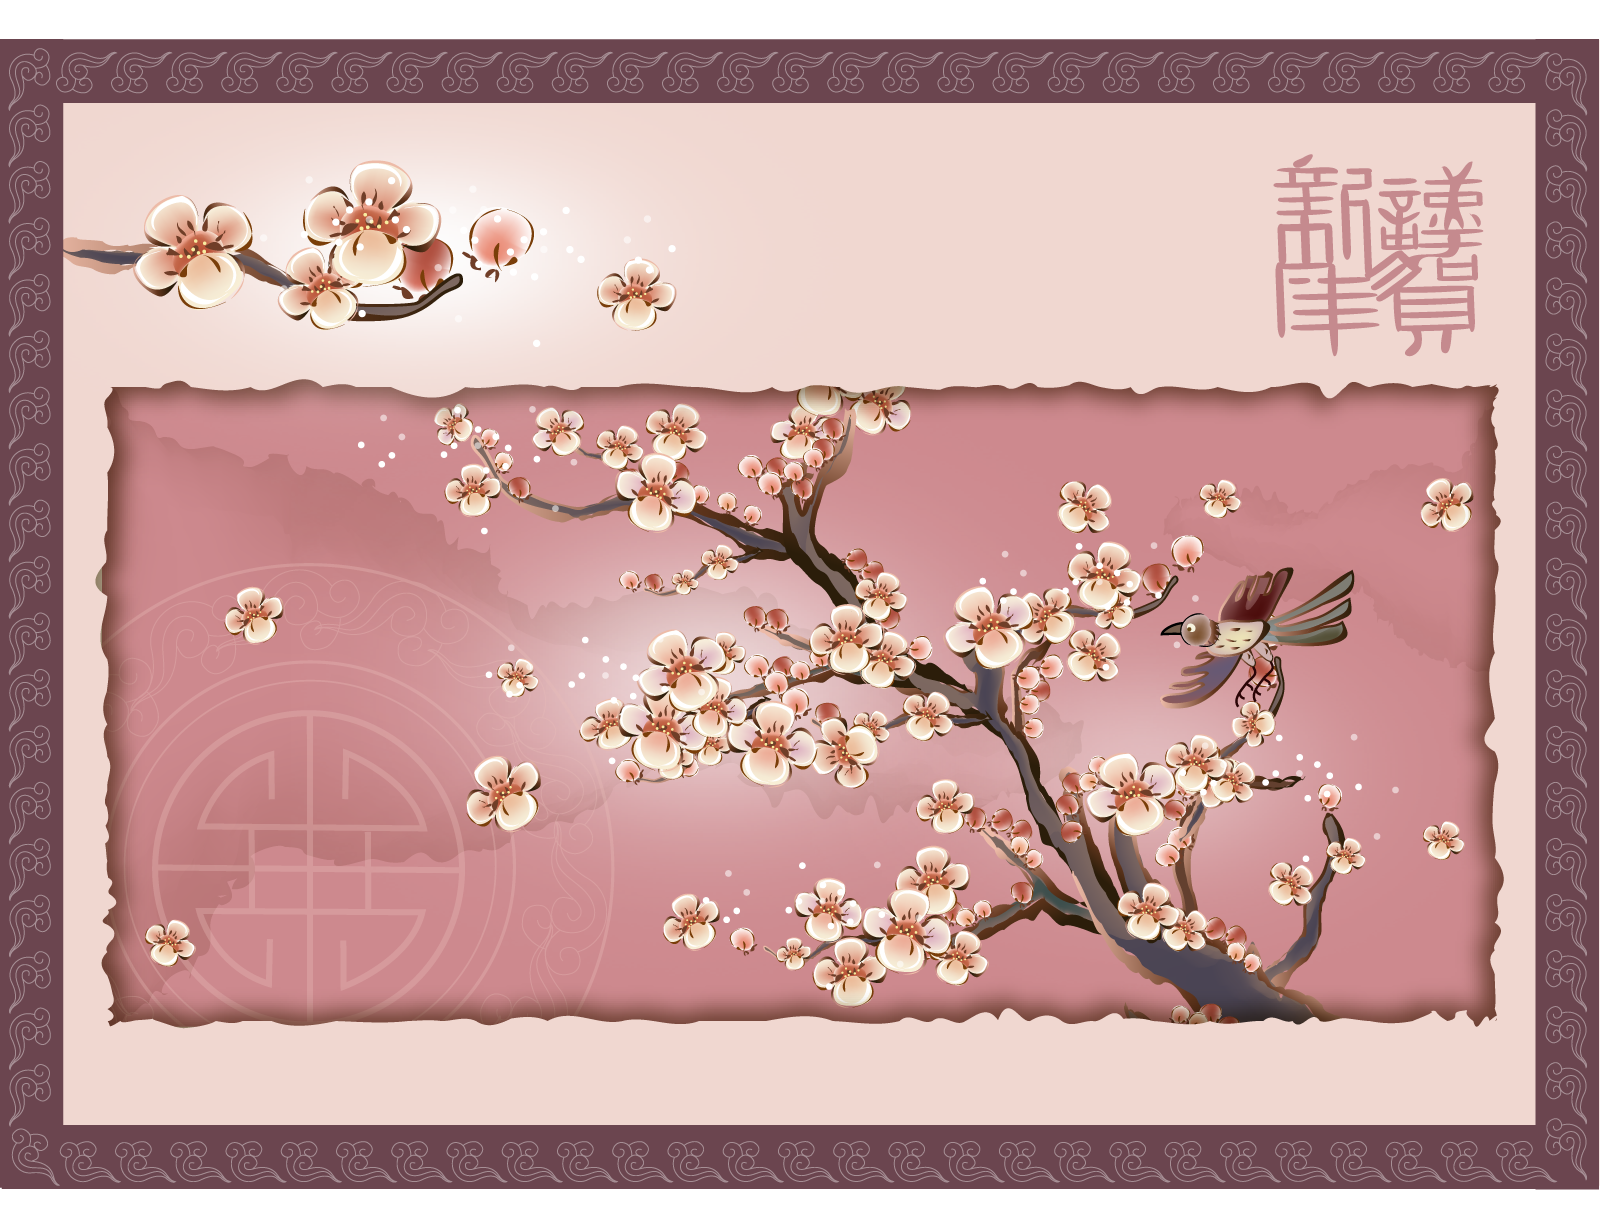 chinesefontdesign.com 2017 02 08 11 01 05 The plum flower background Chinese auspicious painting (Happiness appears in ones face)  Illustrations Vectors AI ESP